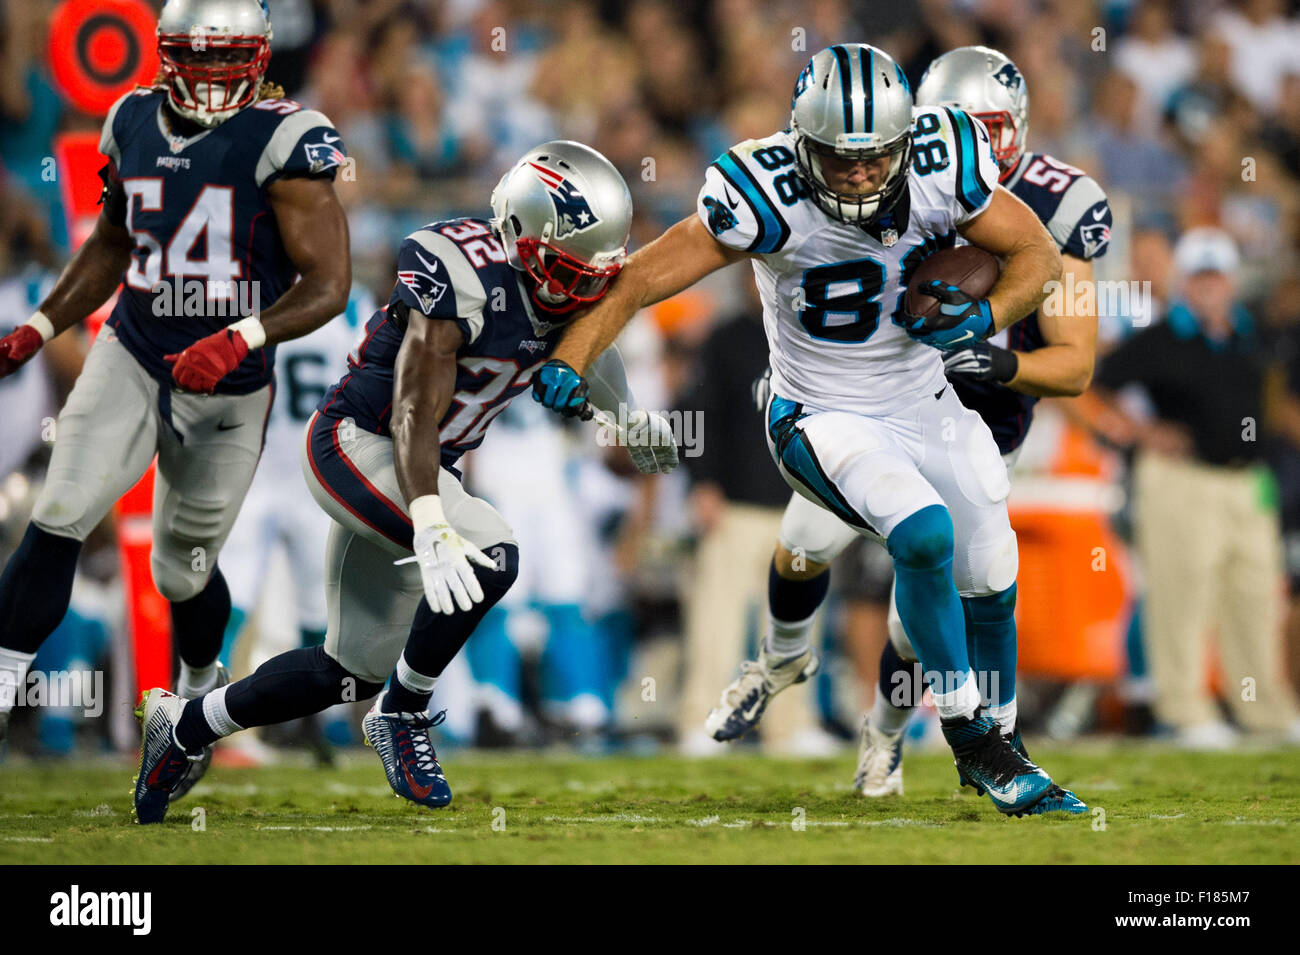 63e7c81b4 Carolina Panthers tight end Greg Olsen (88) during the NFL preseason  football game between the New England Patriots and the Carolina Panthers,  Friday, Aug.